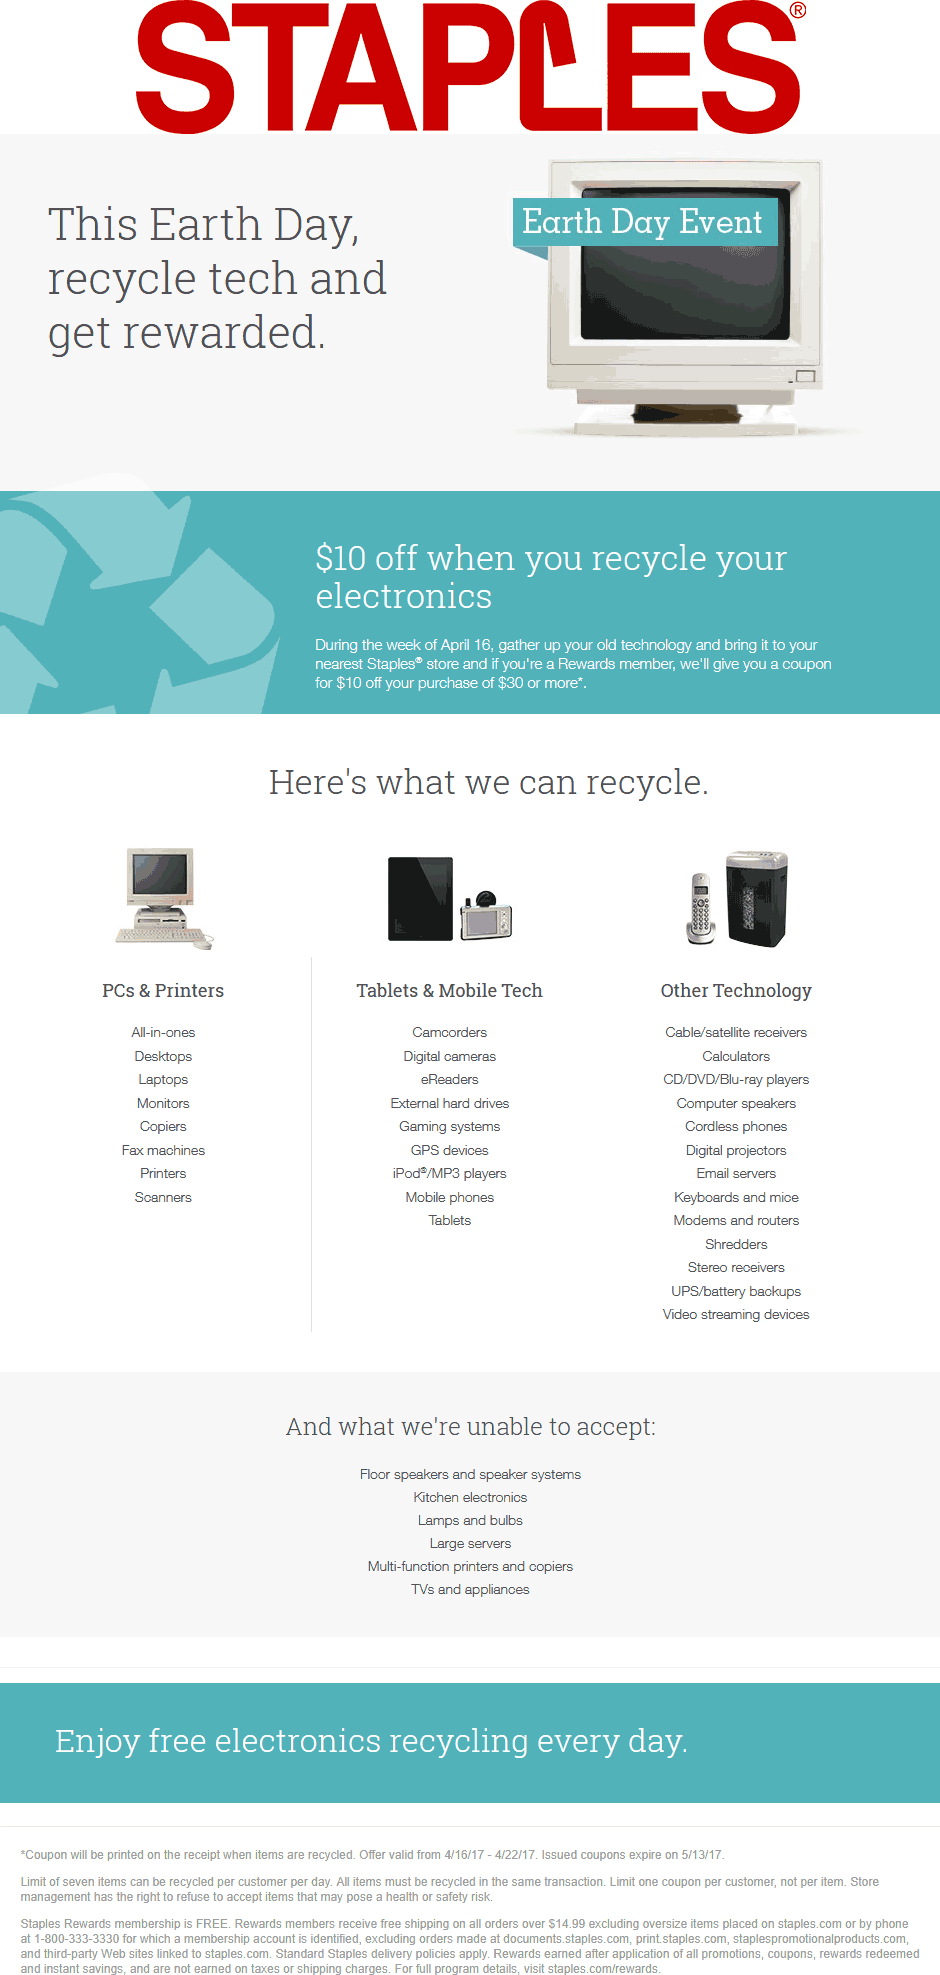 Staples Coupon August 2017 Bring in old electronics to recycle for a $10 off $30 coupon at Staples